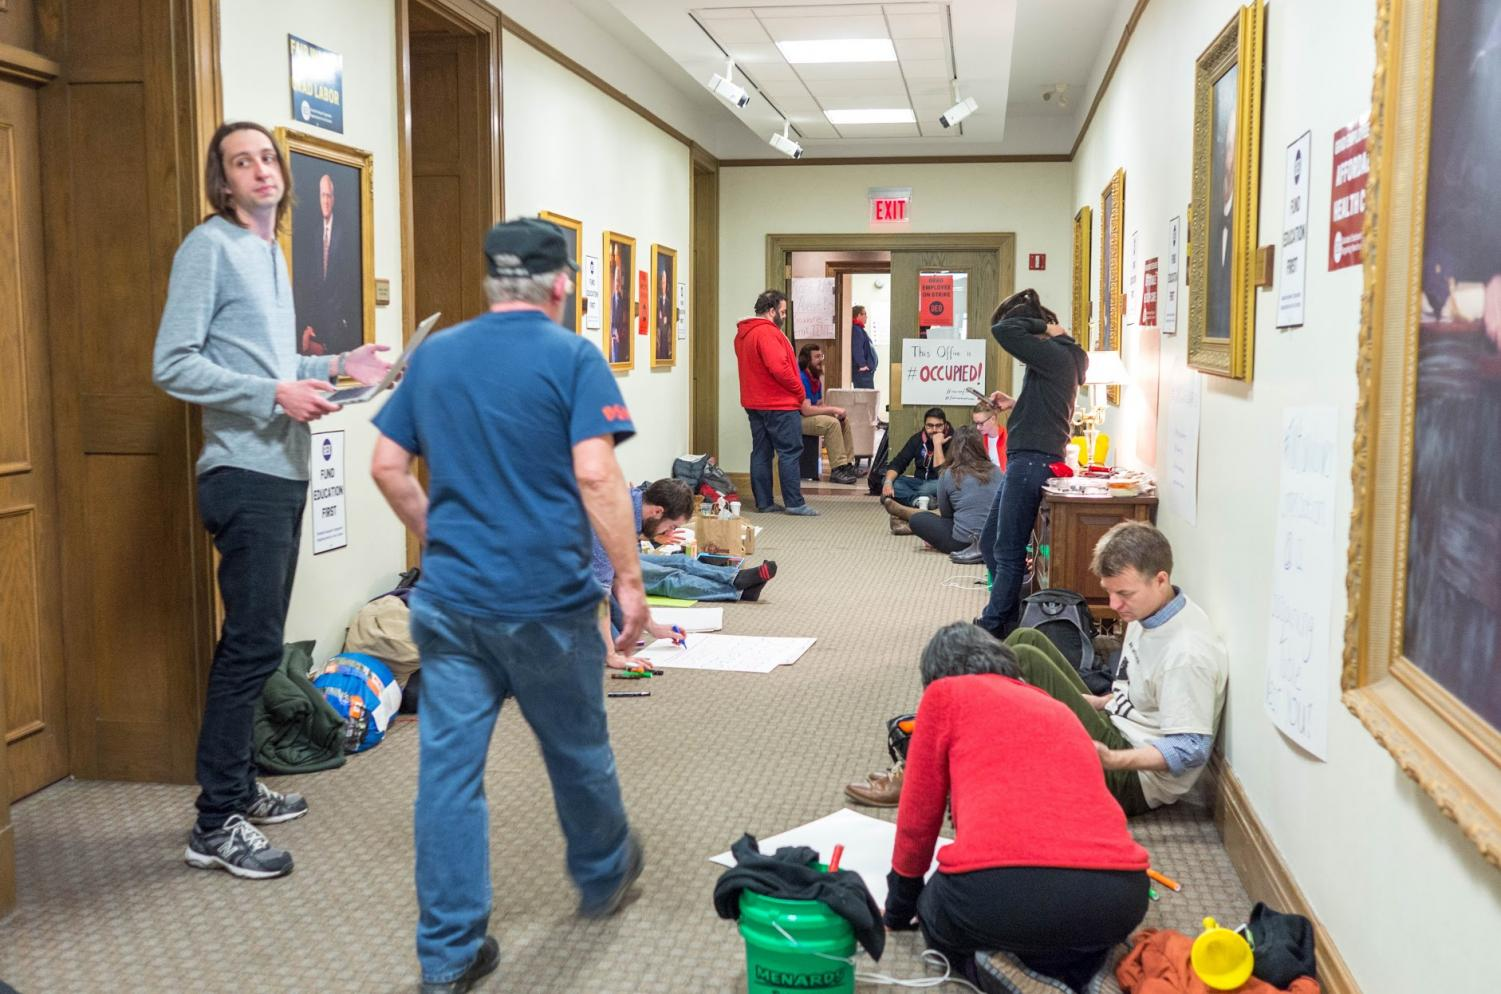 GEO occupied the hallway outside University President Timothy Killeen's office in Henry Administration Building on Wednesday.